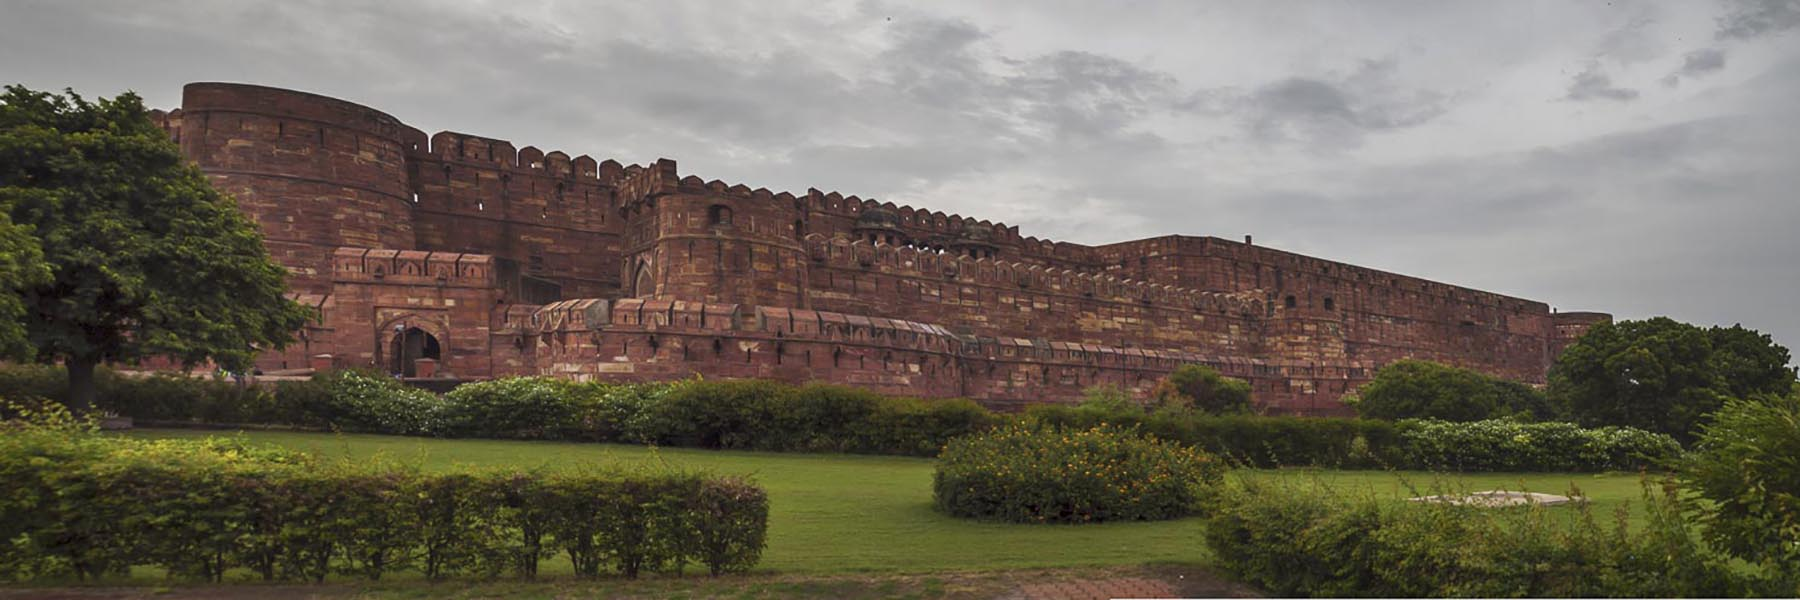 Visit the forts and palaces of India